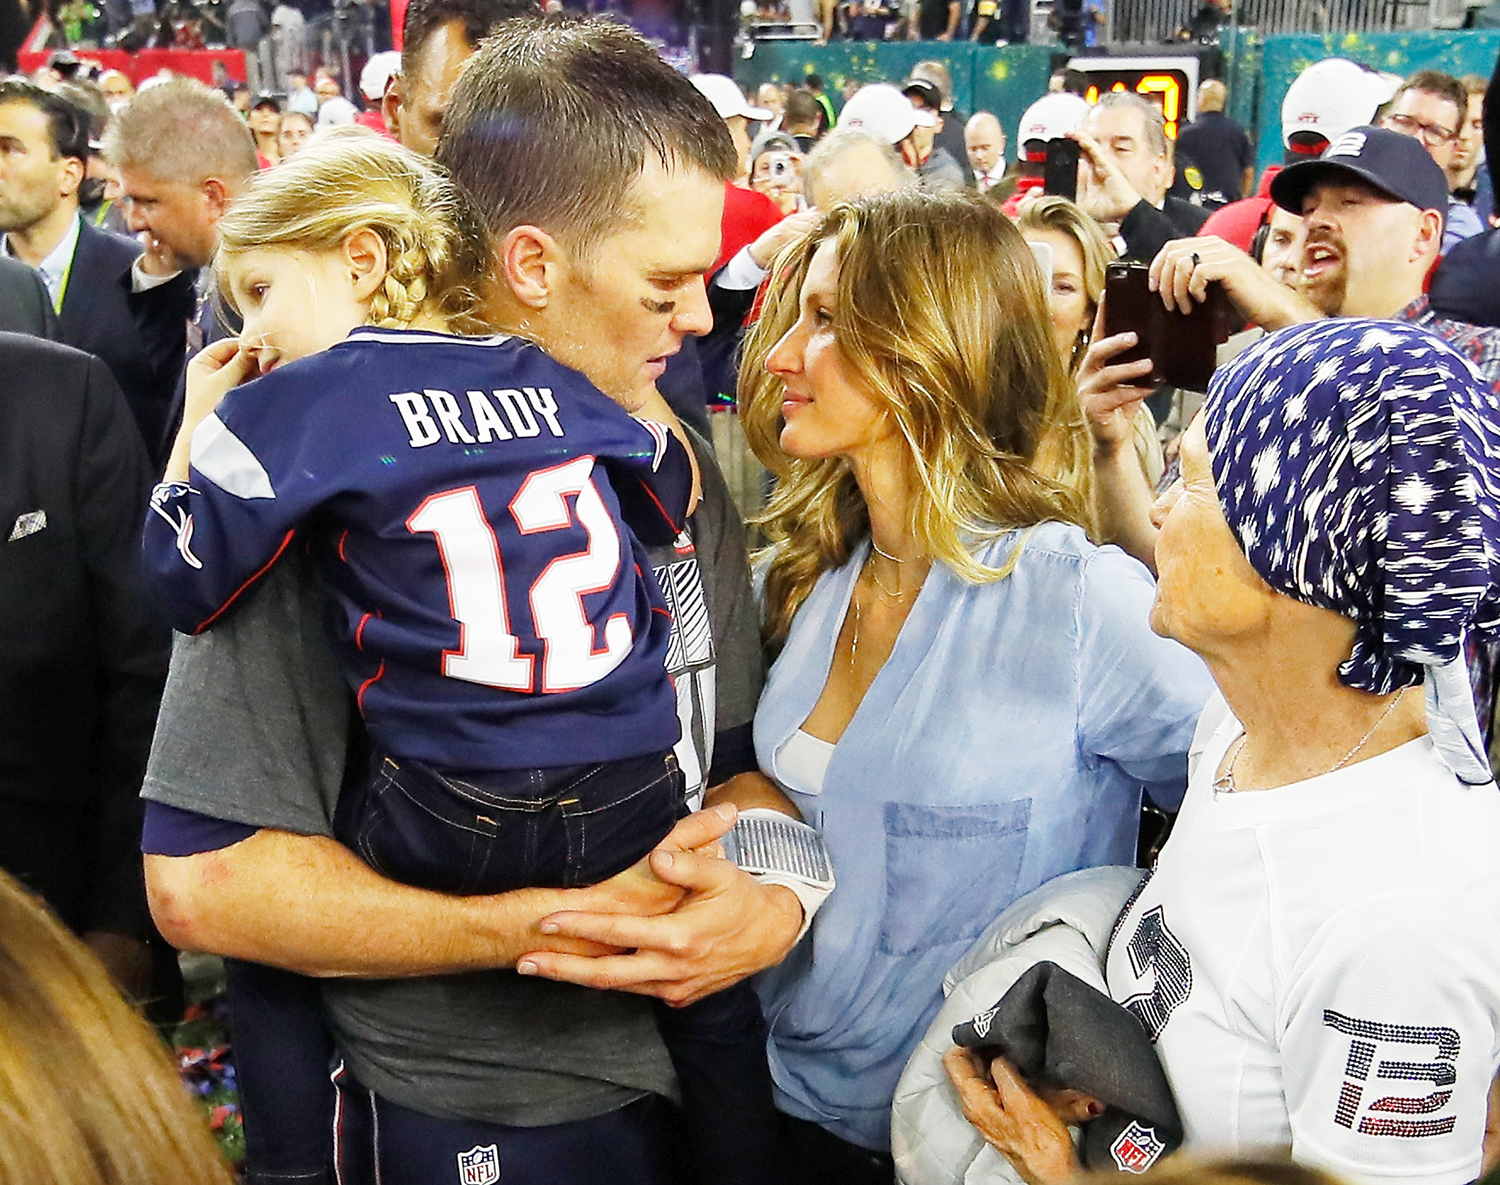 Tom Brady of the New England Patriots celebrates with wife Gisele Bundchen and daughter Vivian Brady after defeating the Atlanta Falcons during Super Bowl 51 at NRG Stadium on February 5, 2017 in Houston, Texas.